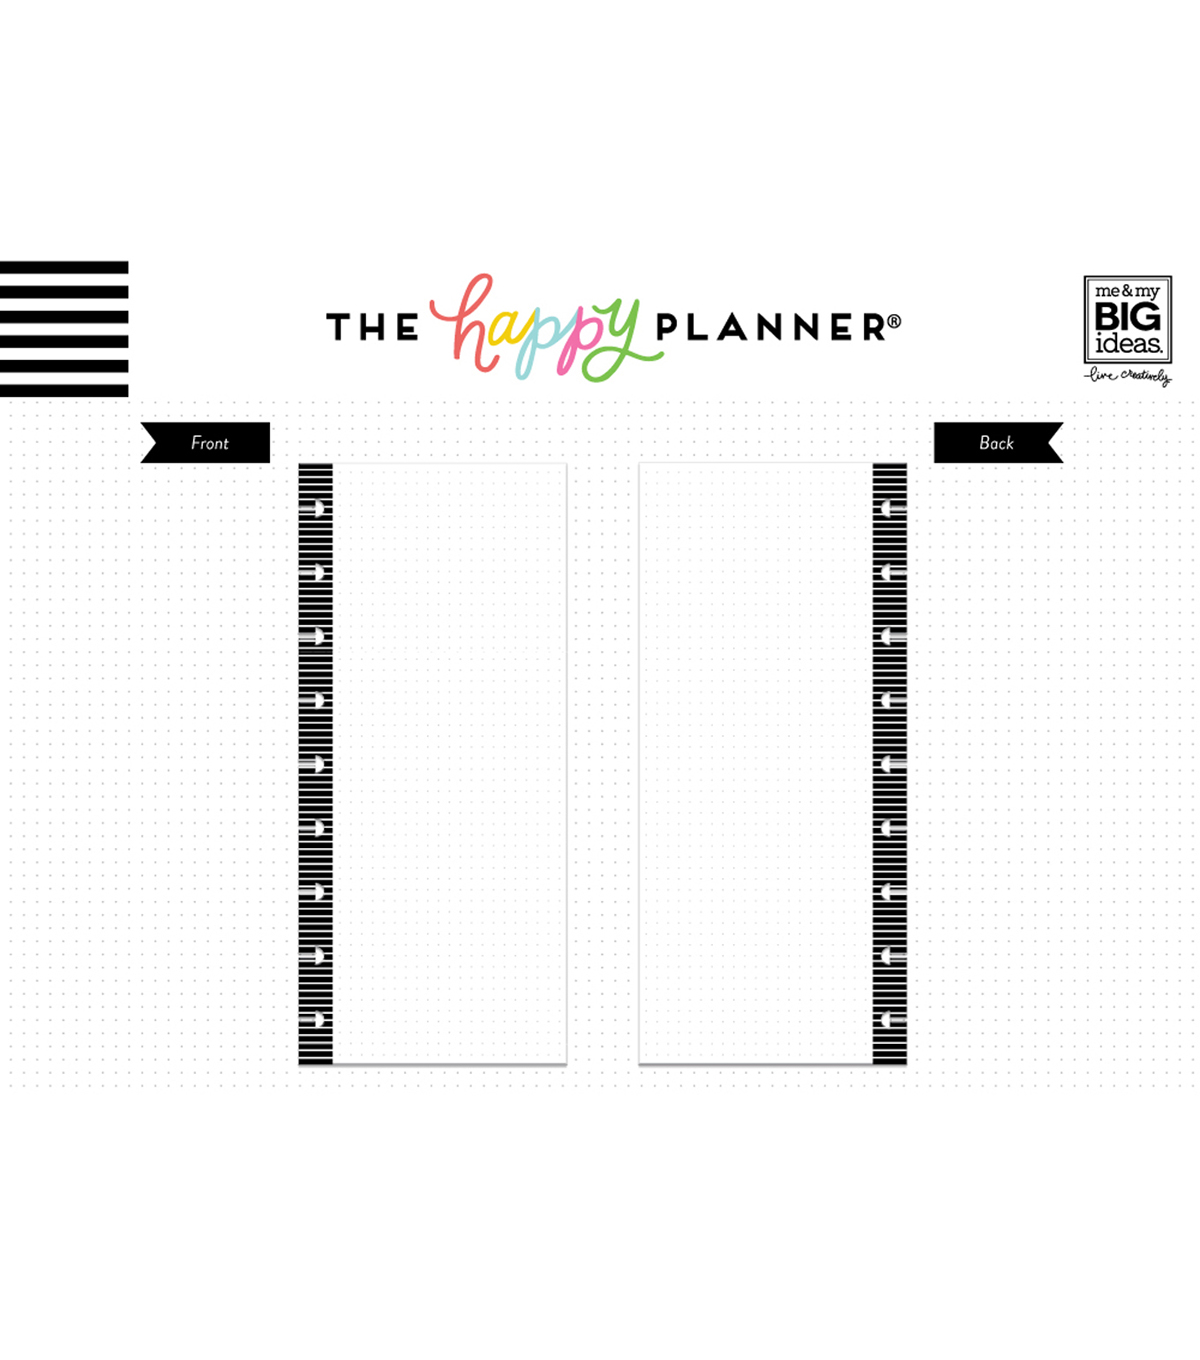 The Happy Planner 60 pk Journal Half Sheets-Grid